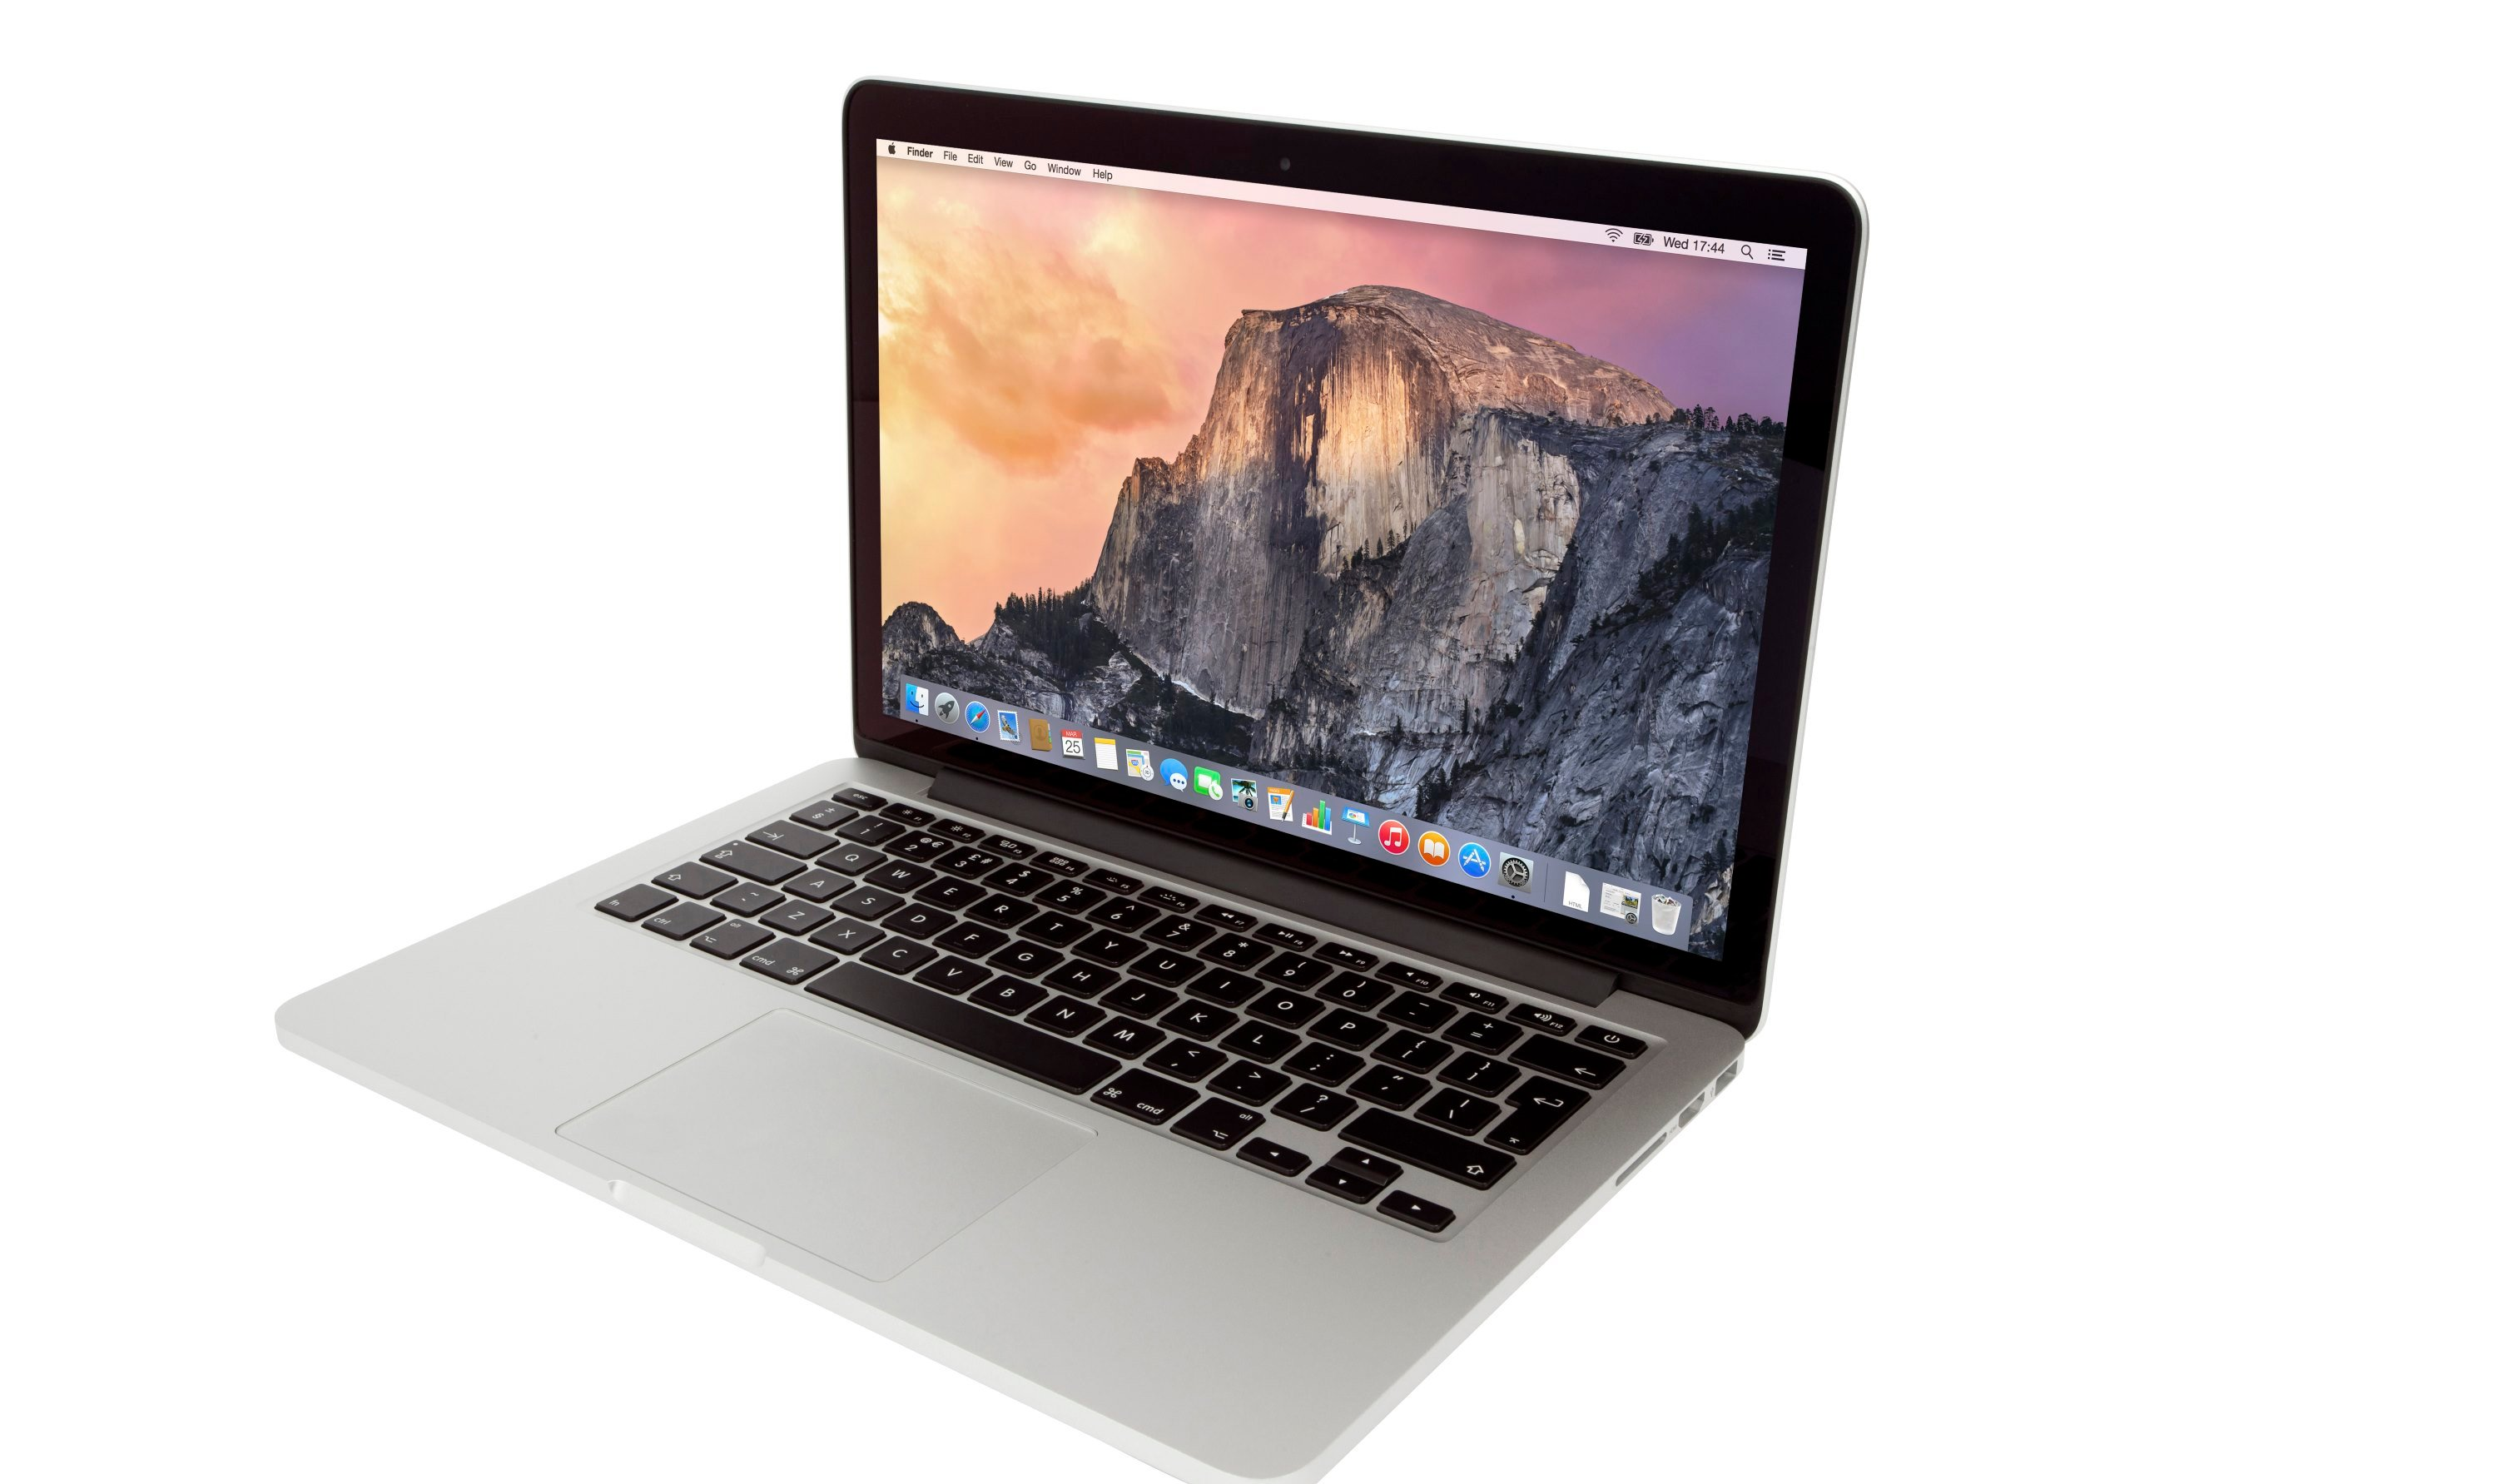 apple 13 inch macbook pro with retina display review. Black Bedroom Furniture Sets. Home Design Ideas